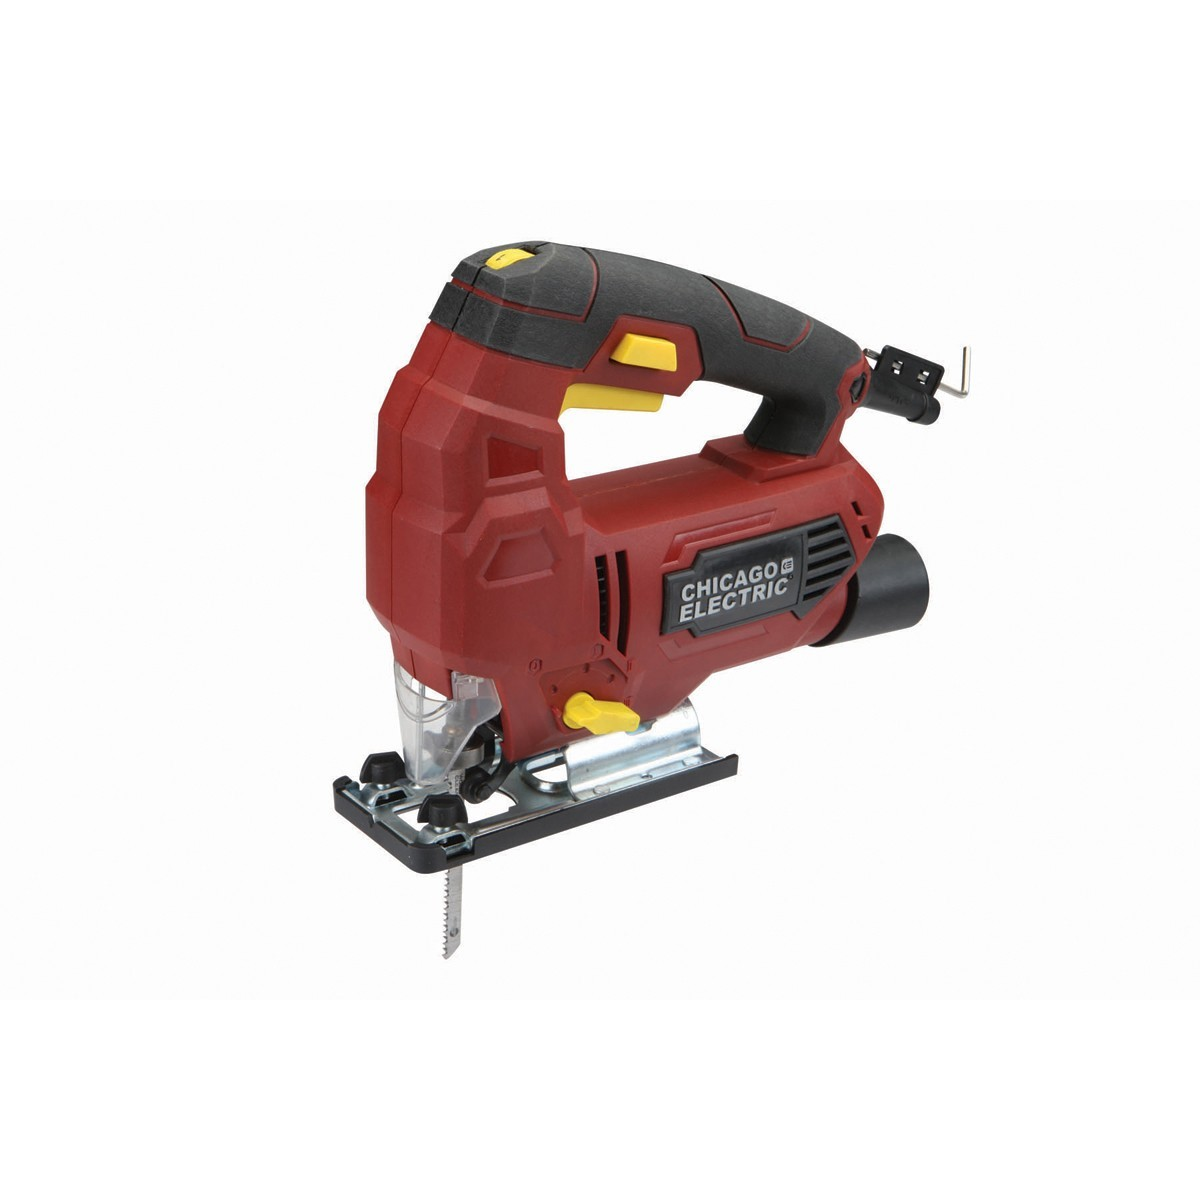 CHICAGO ELECTRIC Jig Saw 69582